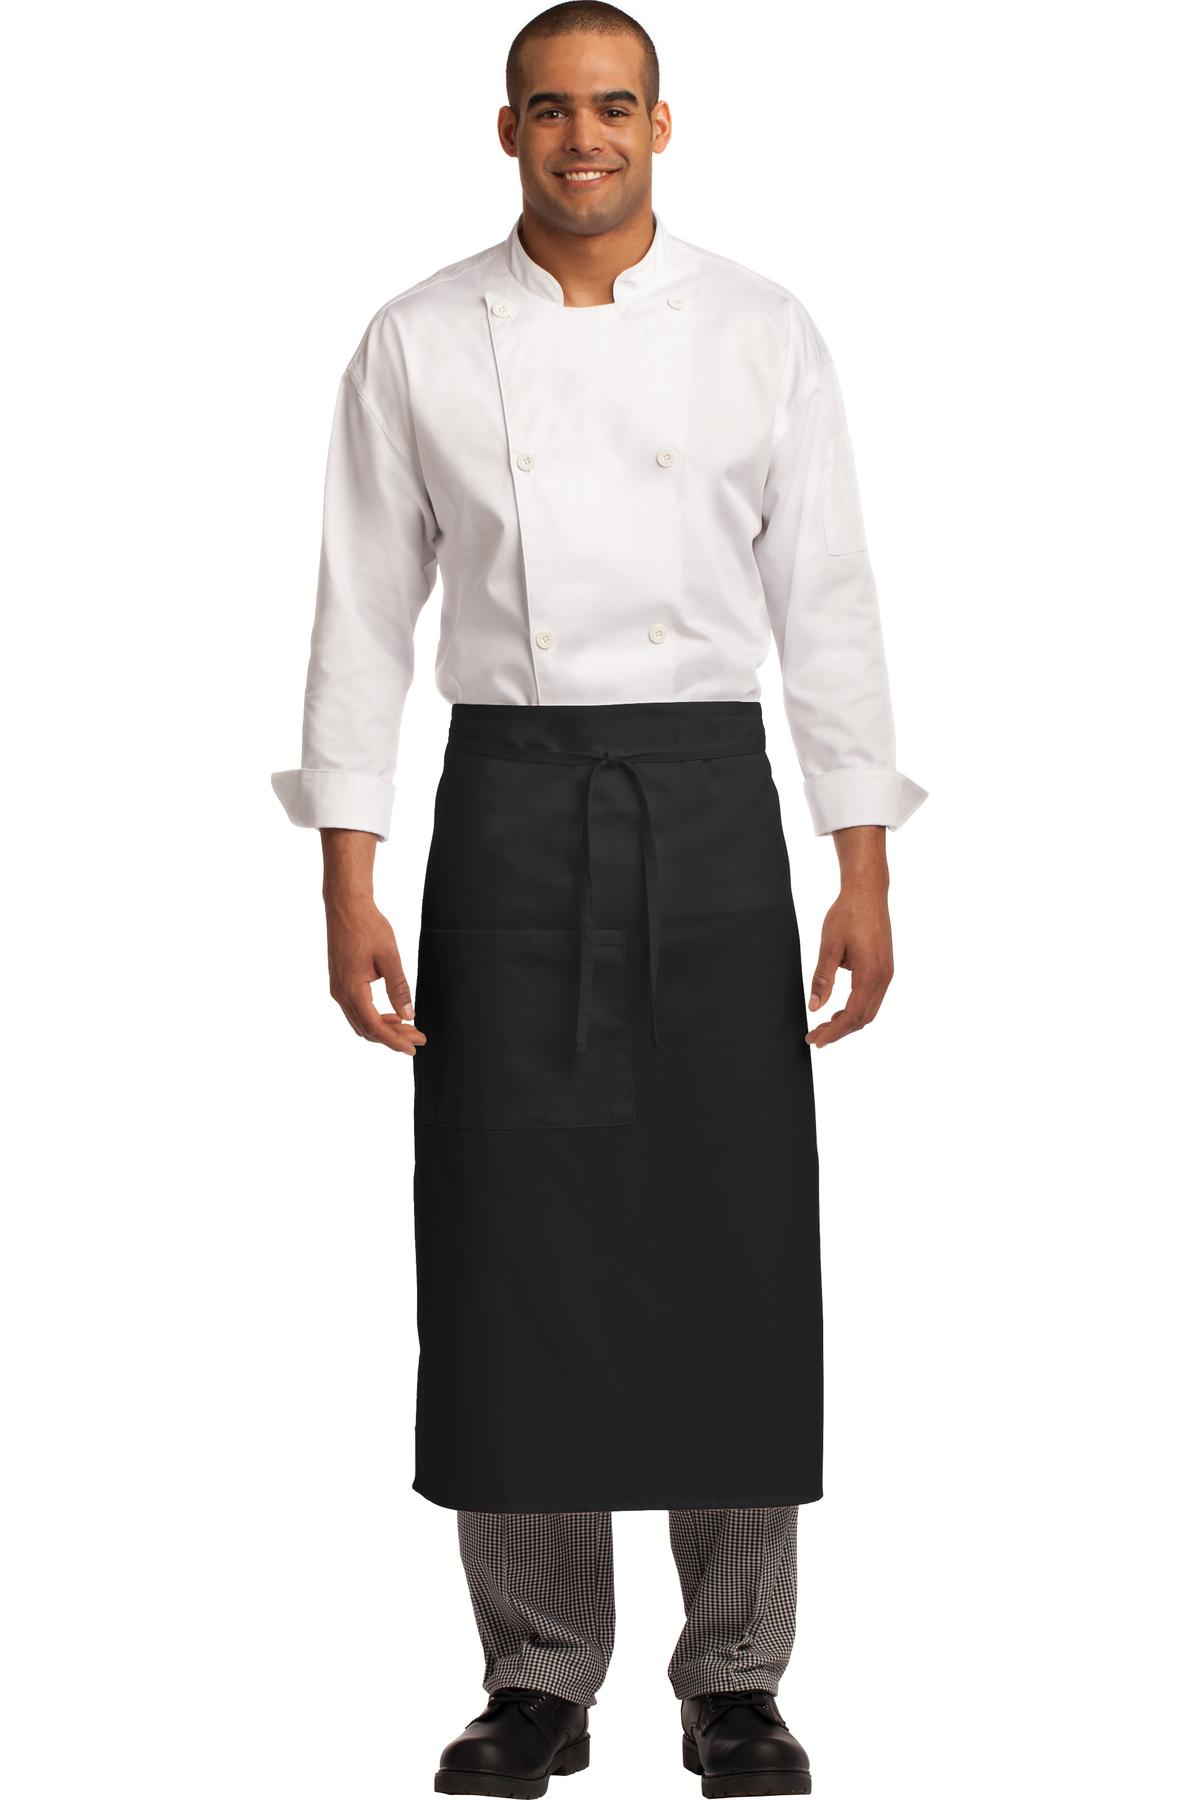 Port Authority ®  Easy Care Full Bistro Apron with Stain Release. A701 - Black